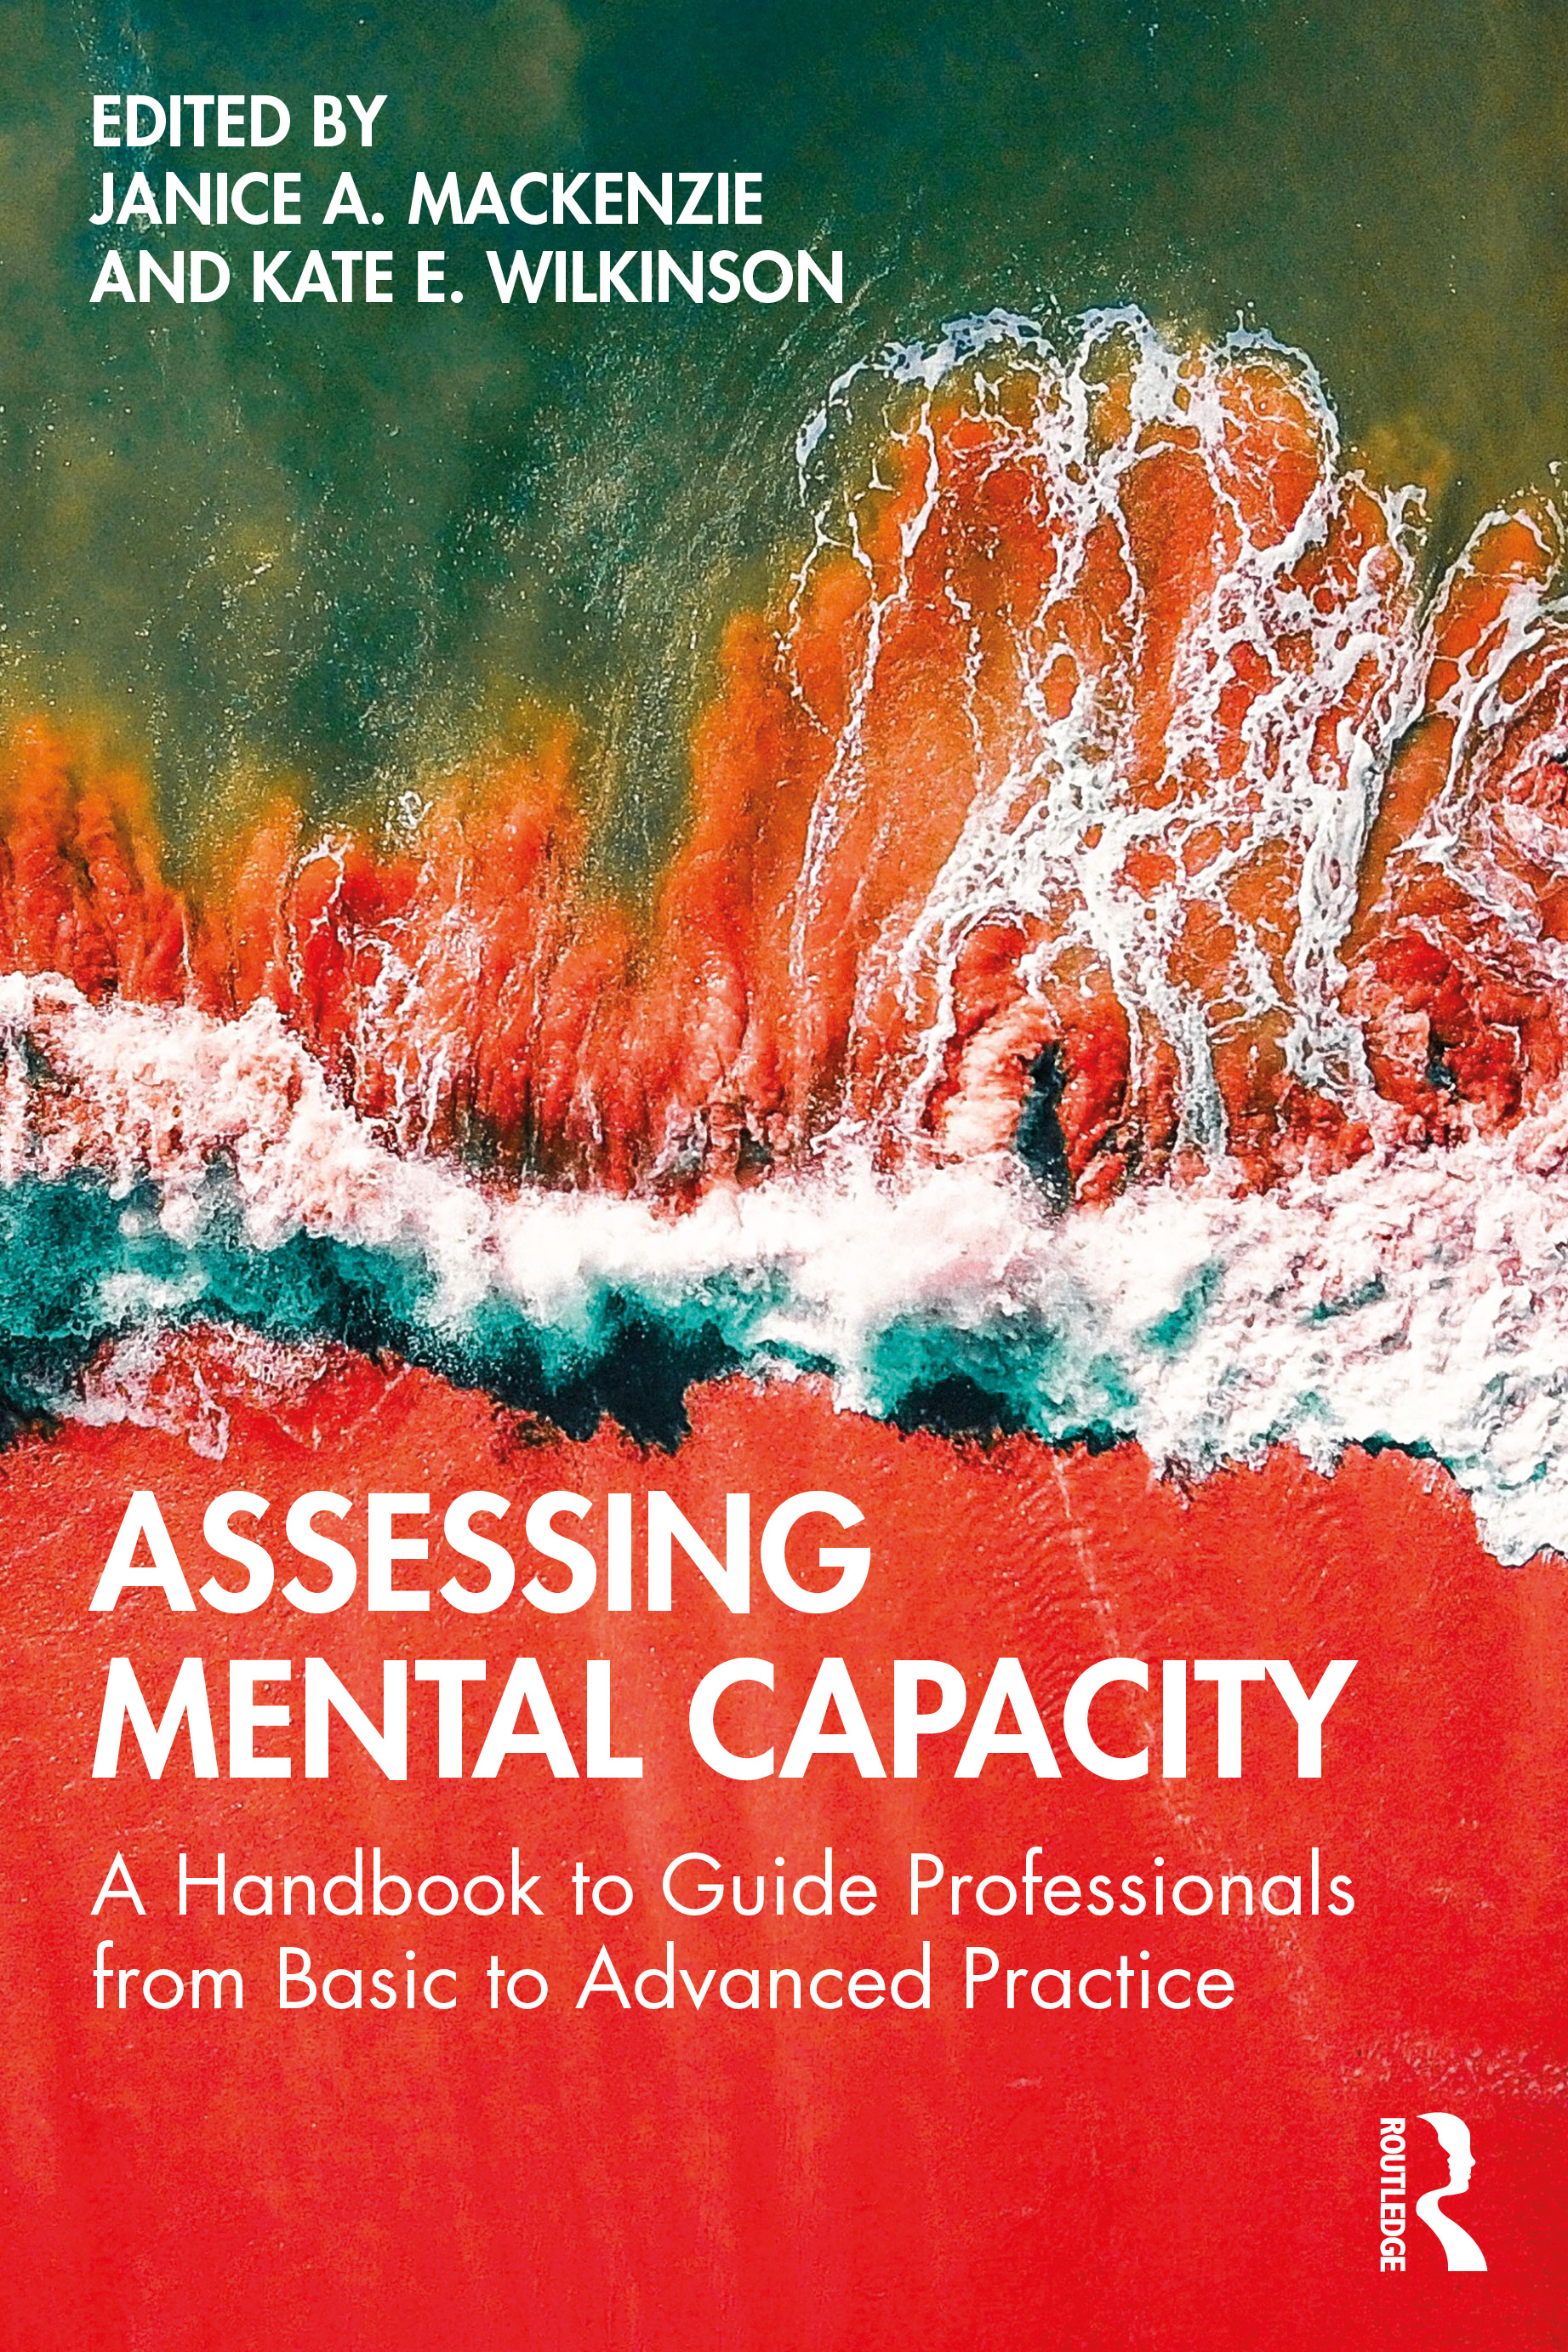 Assessing Mental Capacity: A Handbook to Guide Professionals from Basic to Advanced Practice book cover